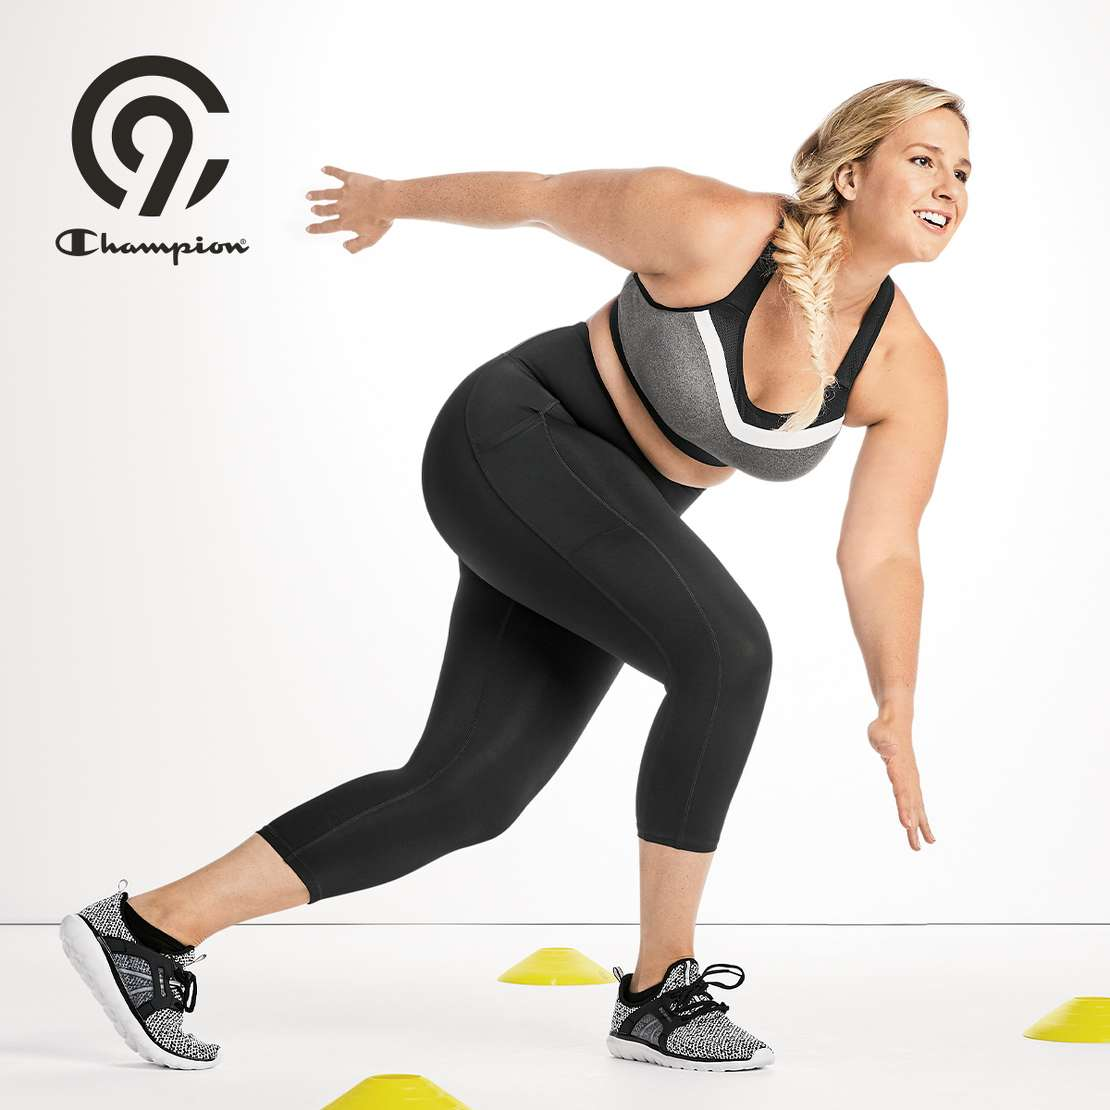 C9 Plus Size Active Wear at Target